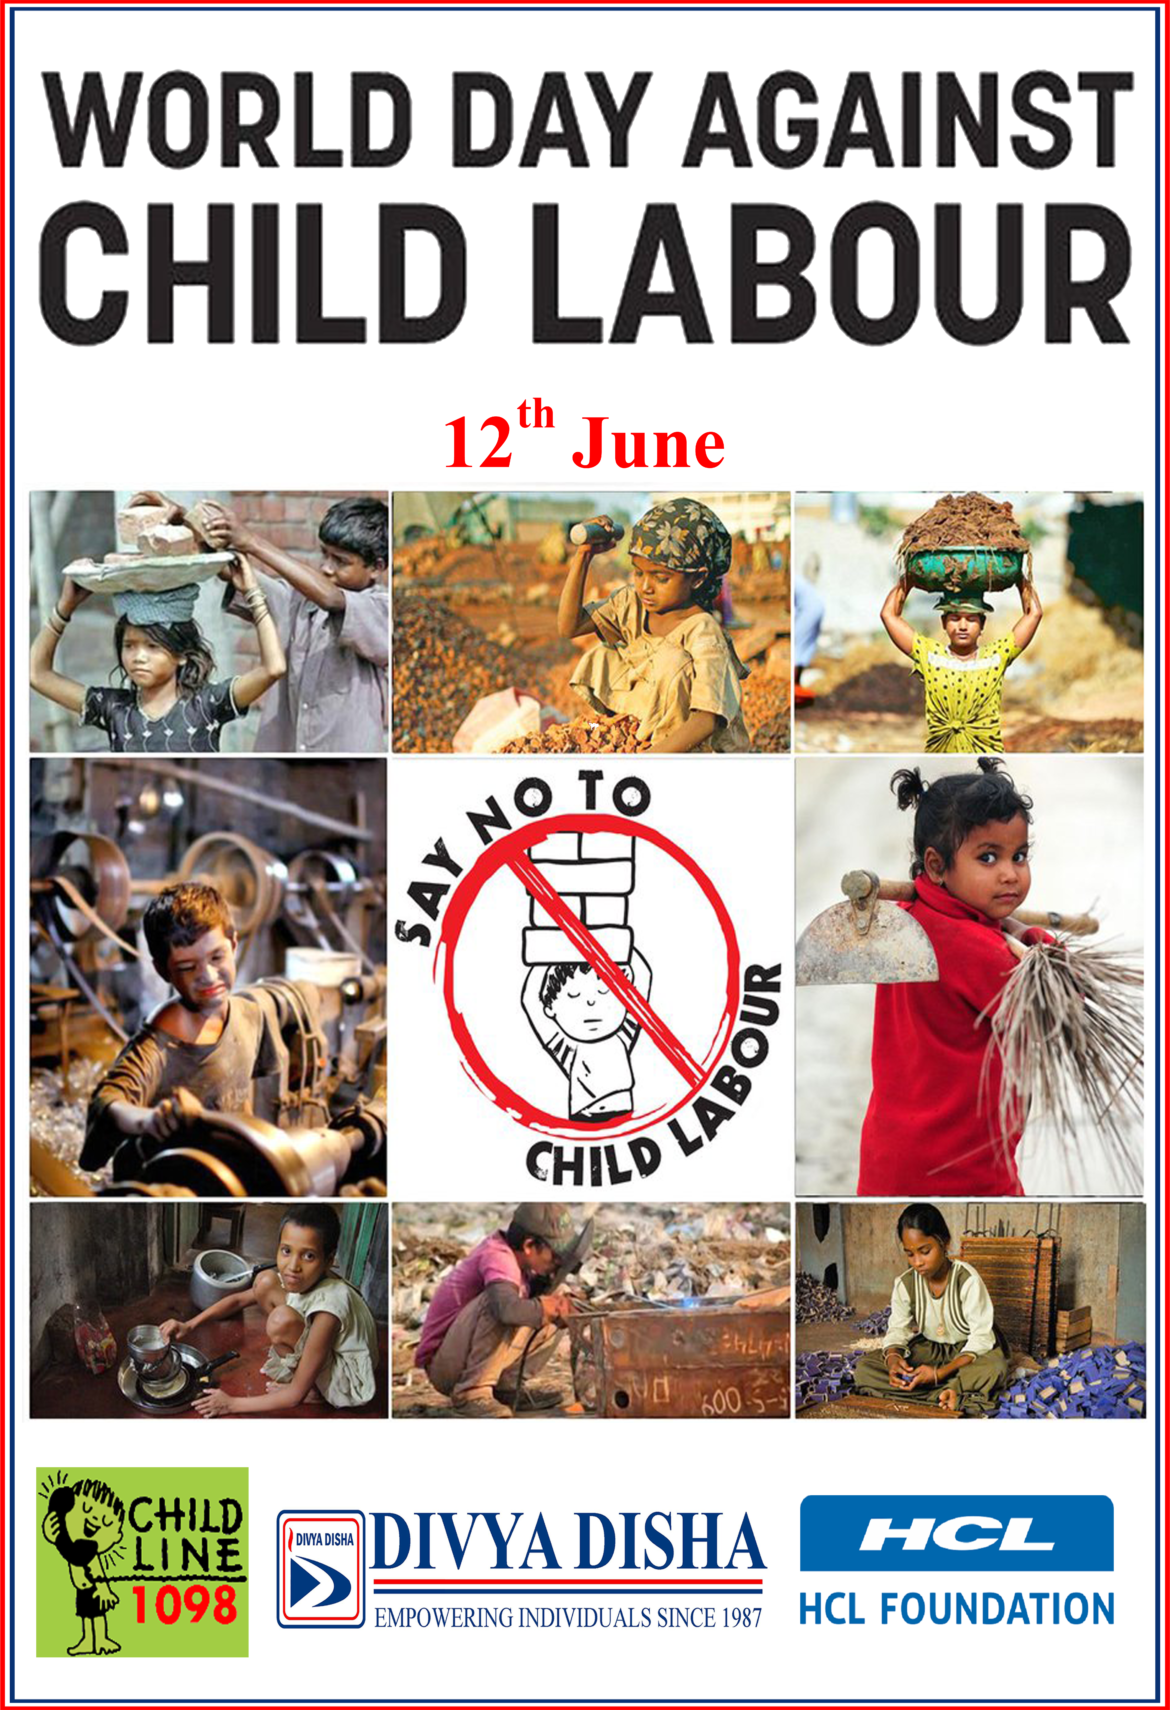 World Day Against Child Labour 12th June 2020